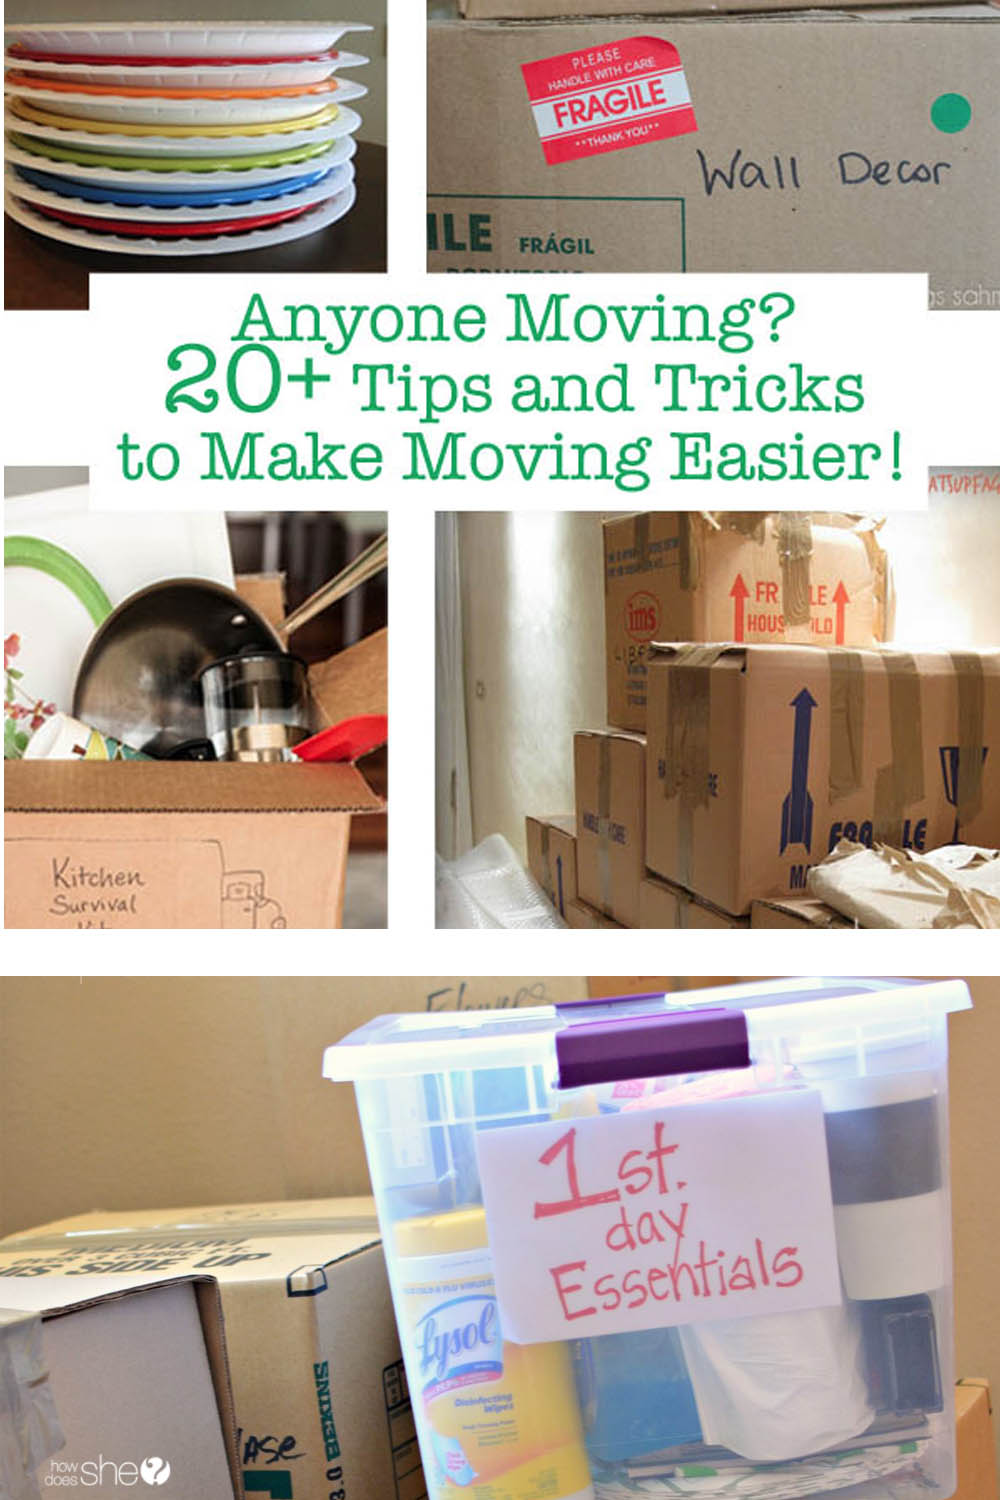 41 Moving And Packing Tips To Make Your ...makespace.com